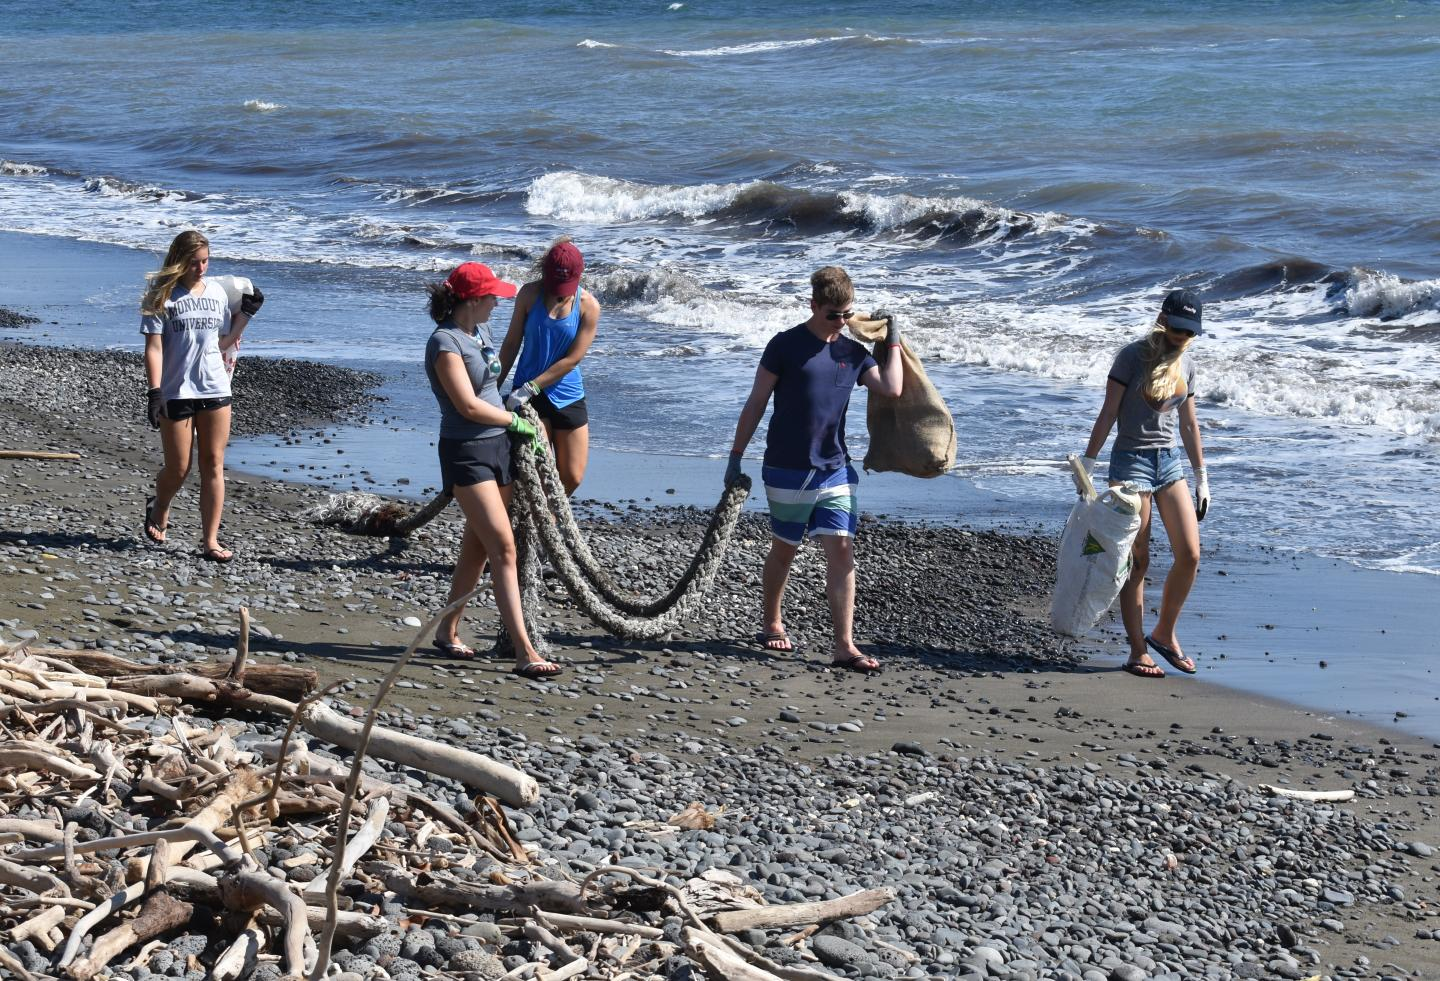 Students do service projects on the beaches of Hawaii and Australia during their teen travel tour.